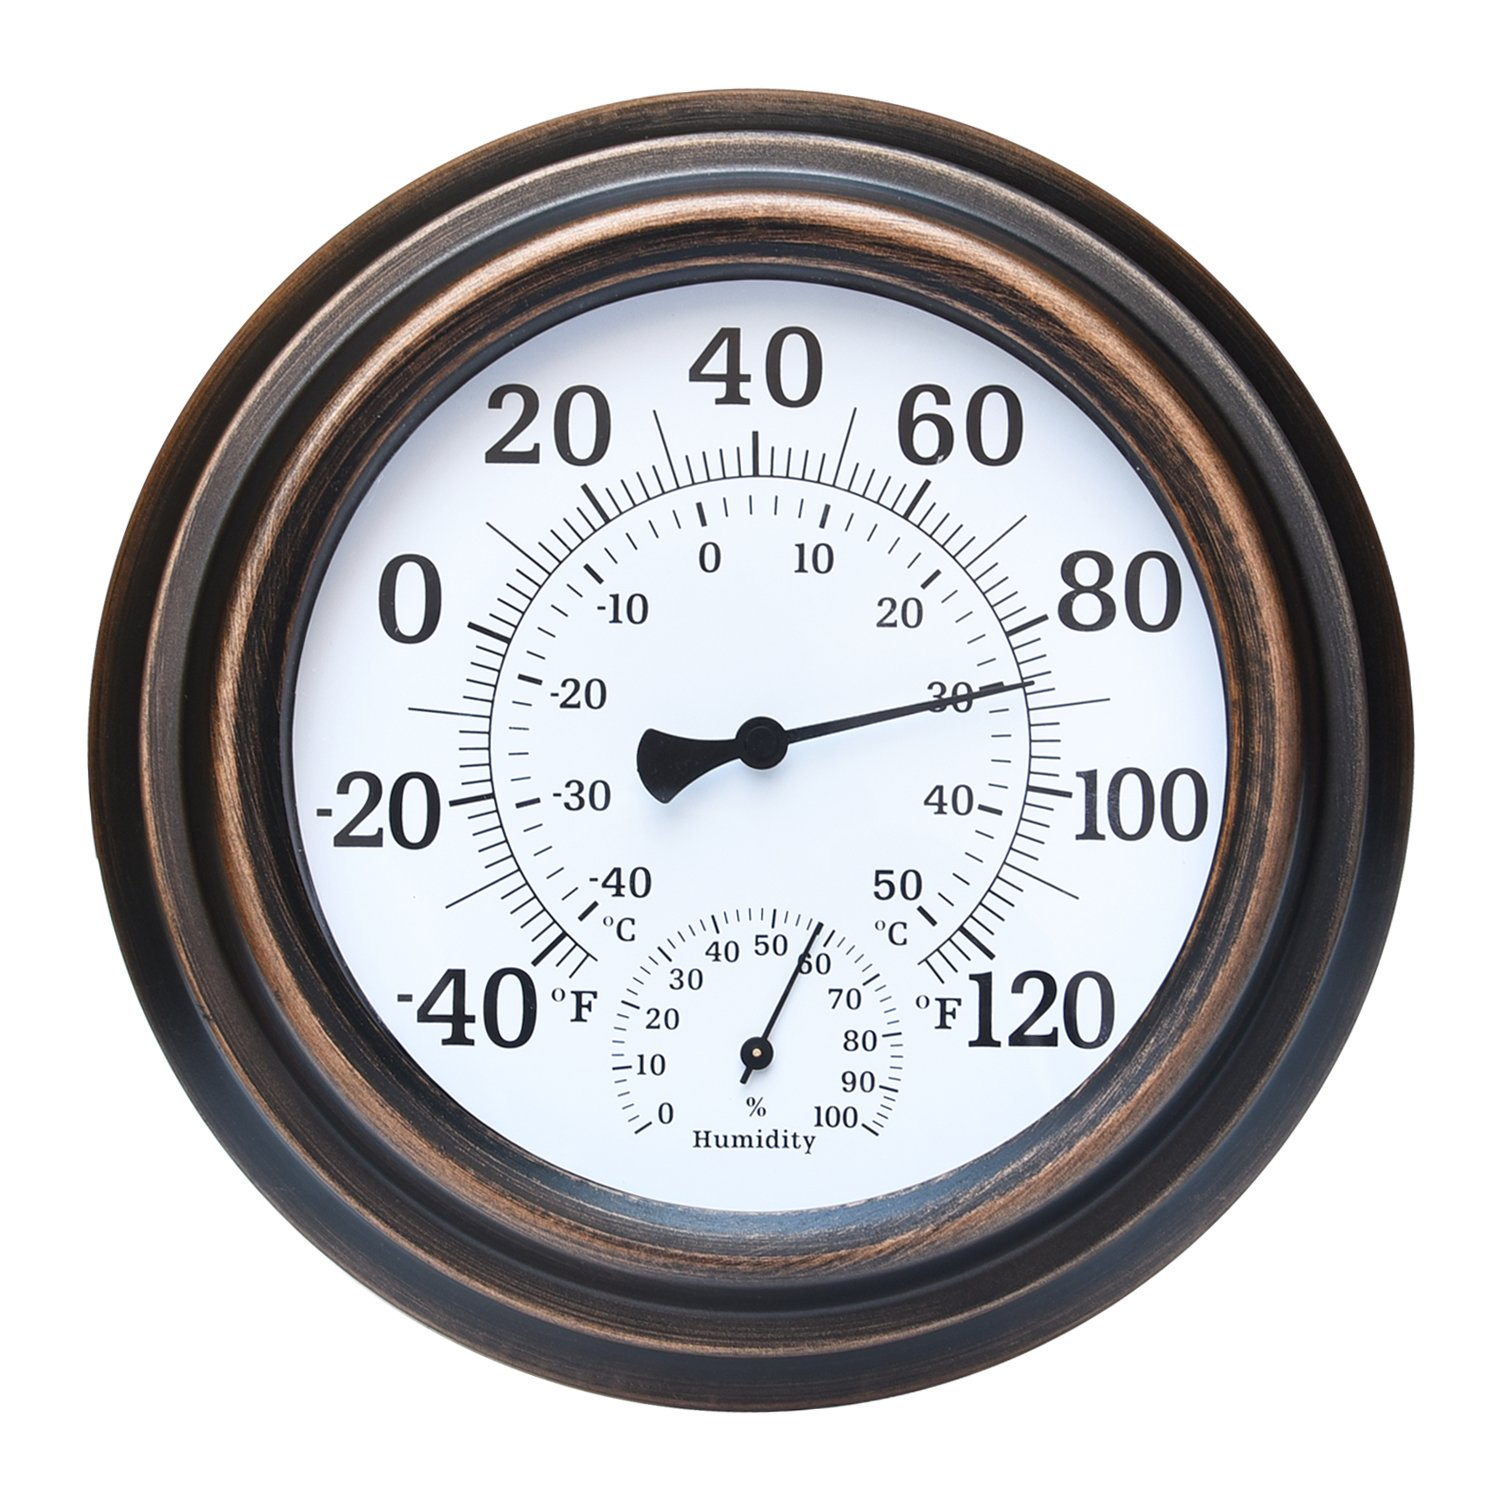 FyGou 8'' Indoor/Outdoor Thermometer for Room,Decorative,Patio,Garden,Wall Hygrometer Thermometer (Bronze)